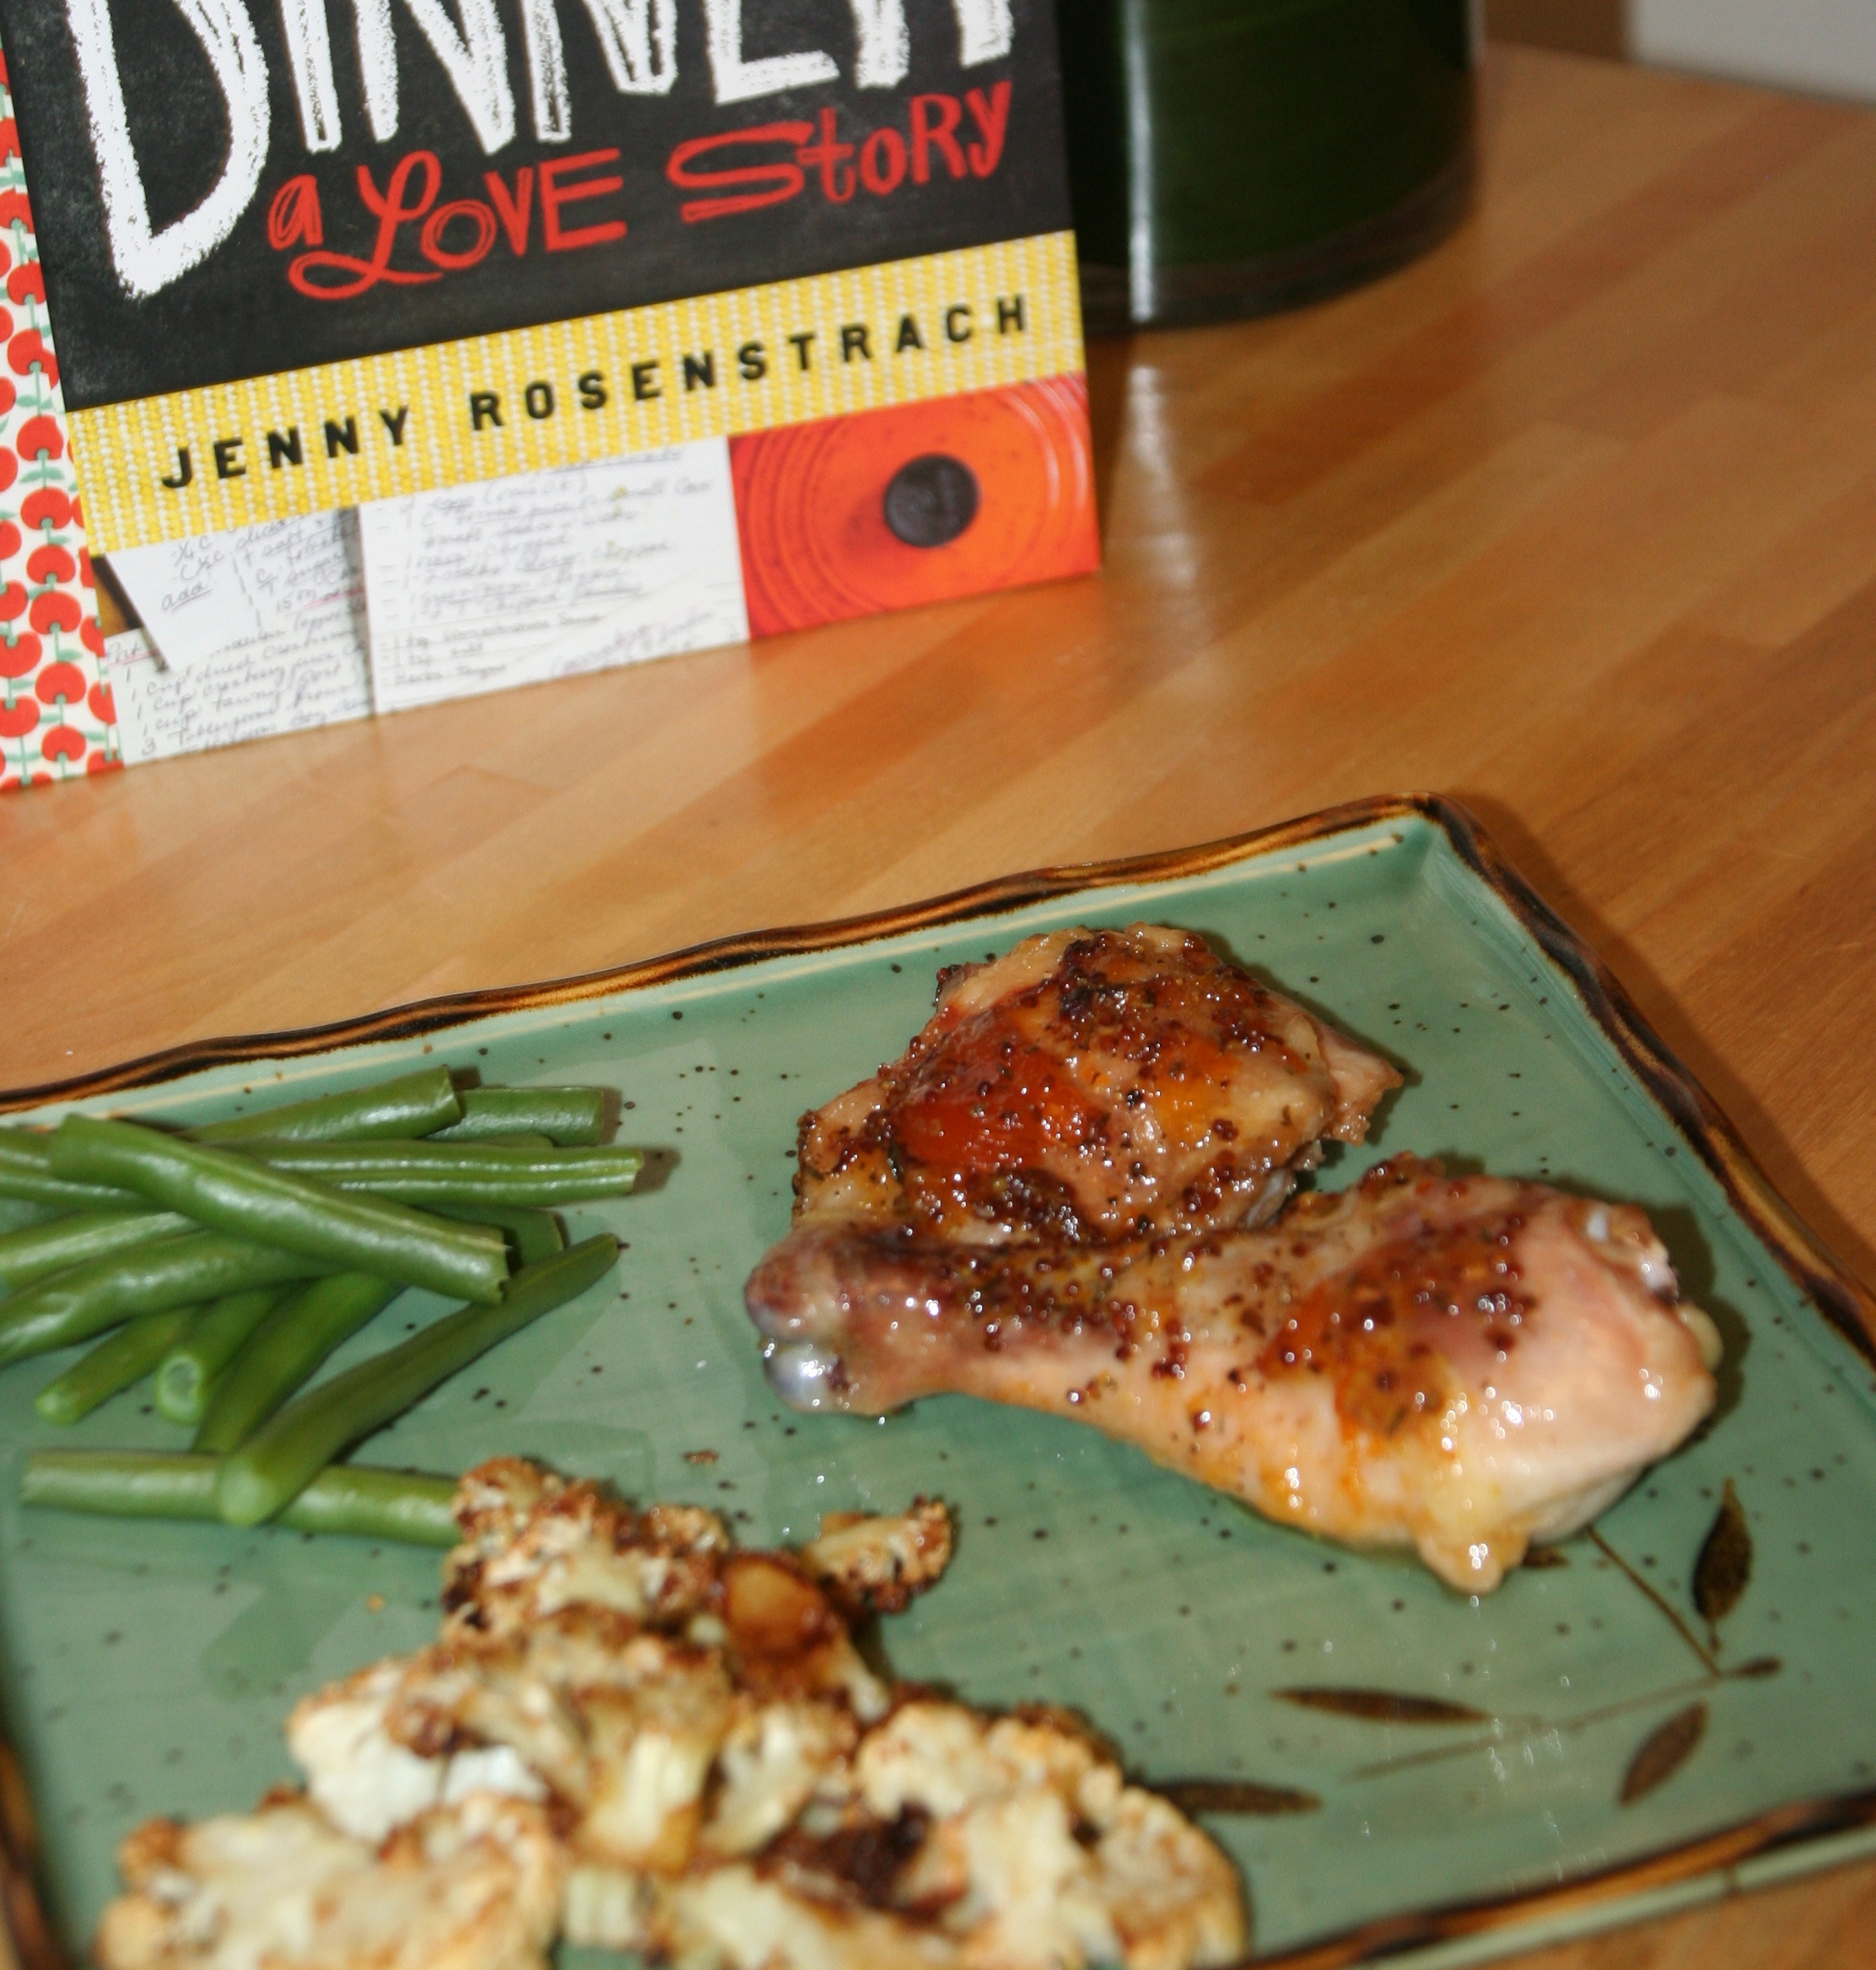 Apricot-Mustard Baked Chicken, courtesy of Dinner: A Love Story